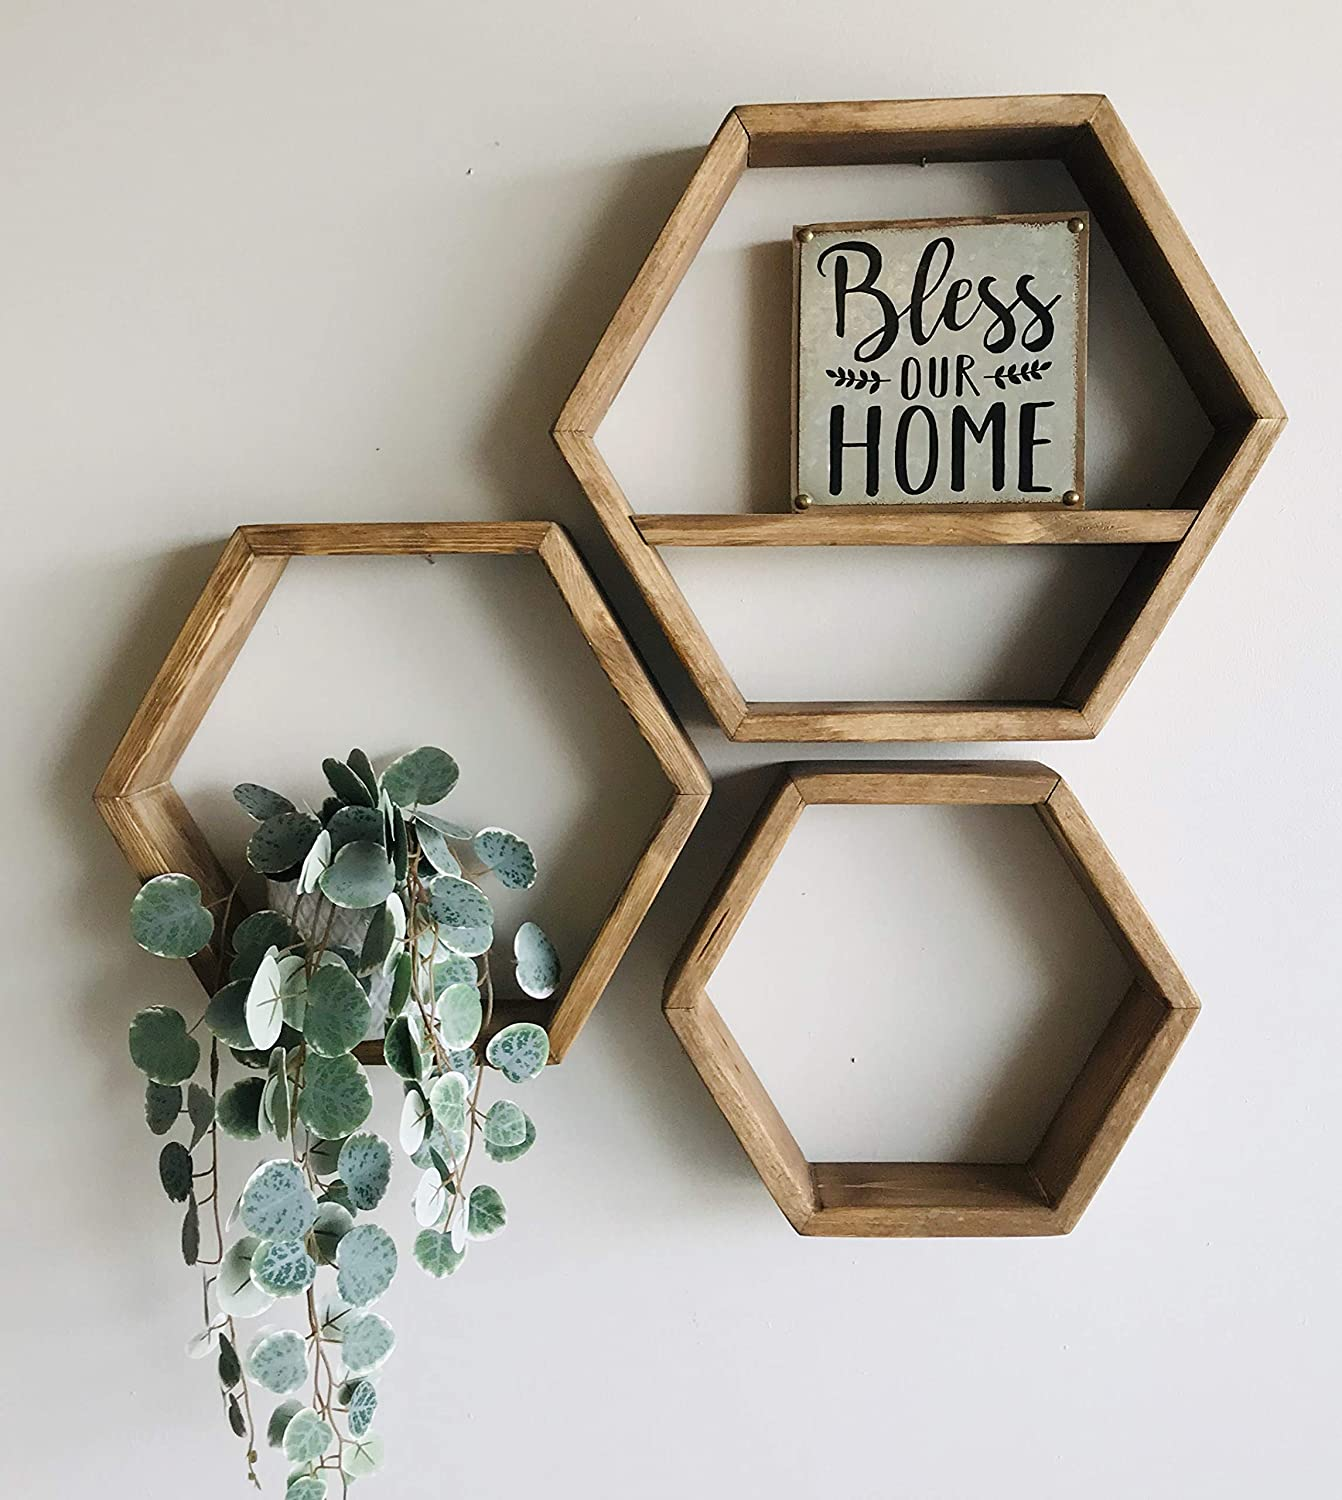 Poppy's Woodworking Set of 3 Nesting Honeycomb Hexagon Shelves Rustic or Modern Handmade in Utah USA Fully Assembled - Hanging Hardware Included (Speciality Walnut)